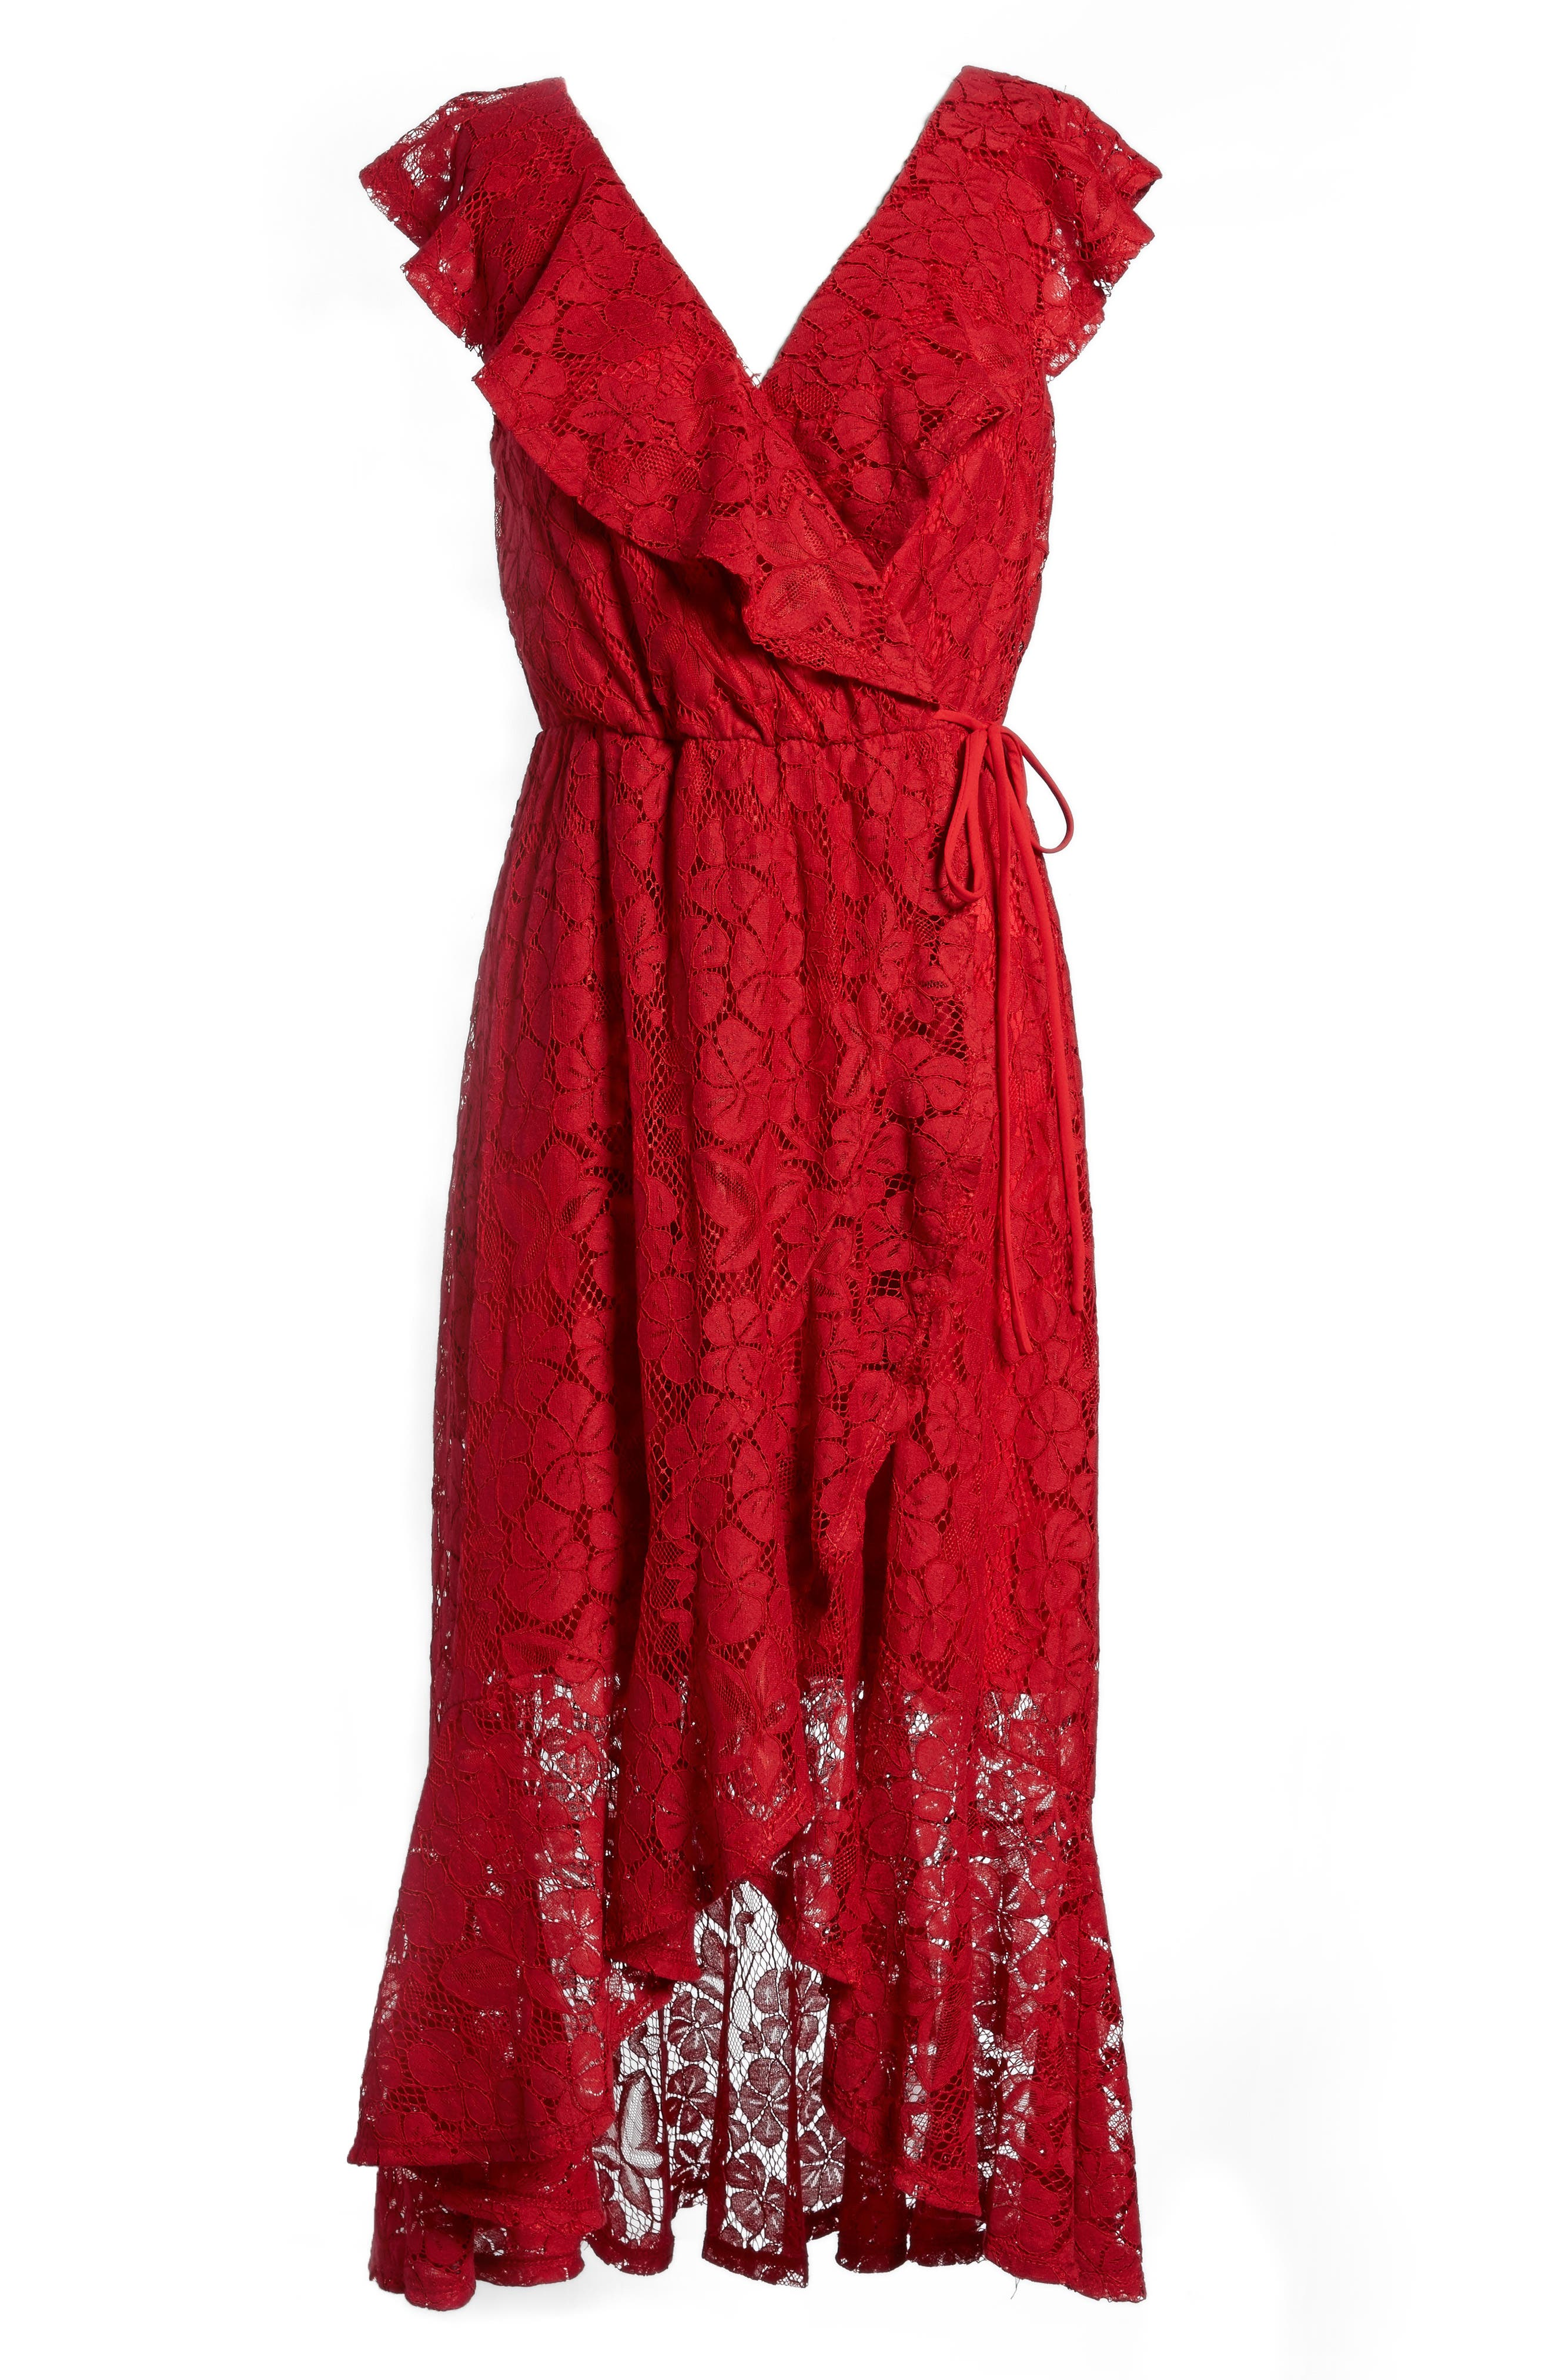 Ruffle Lace Wrap Dress,                             Alternate thumbnail 6, color,                             Red